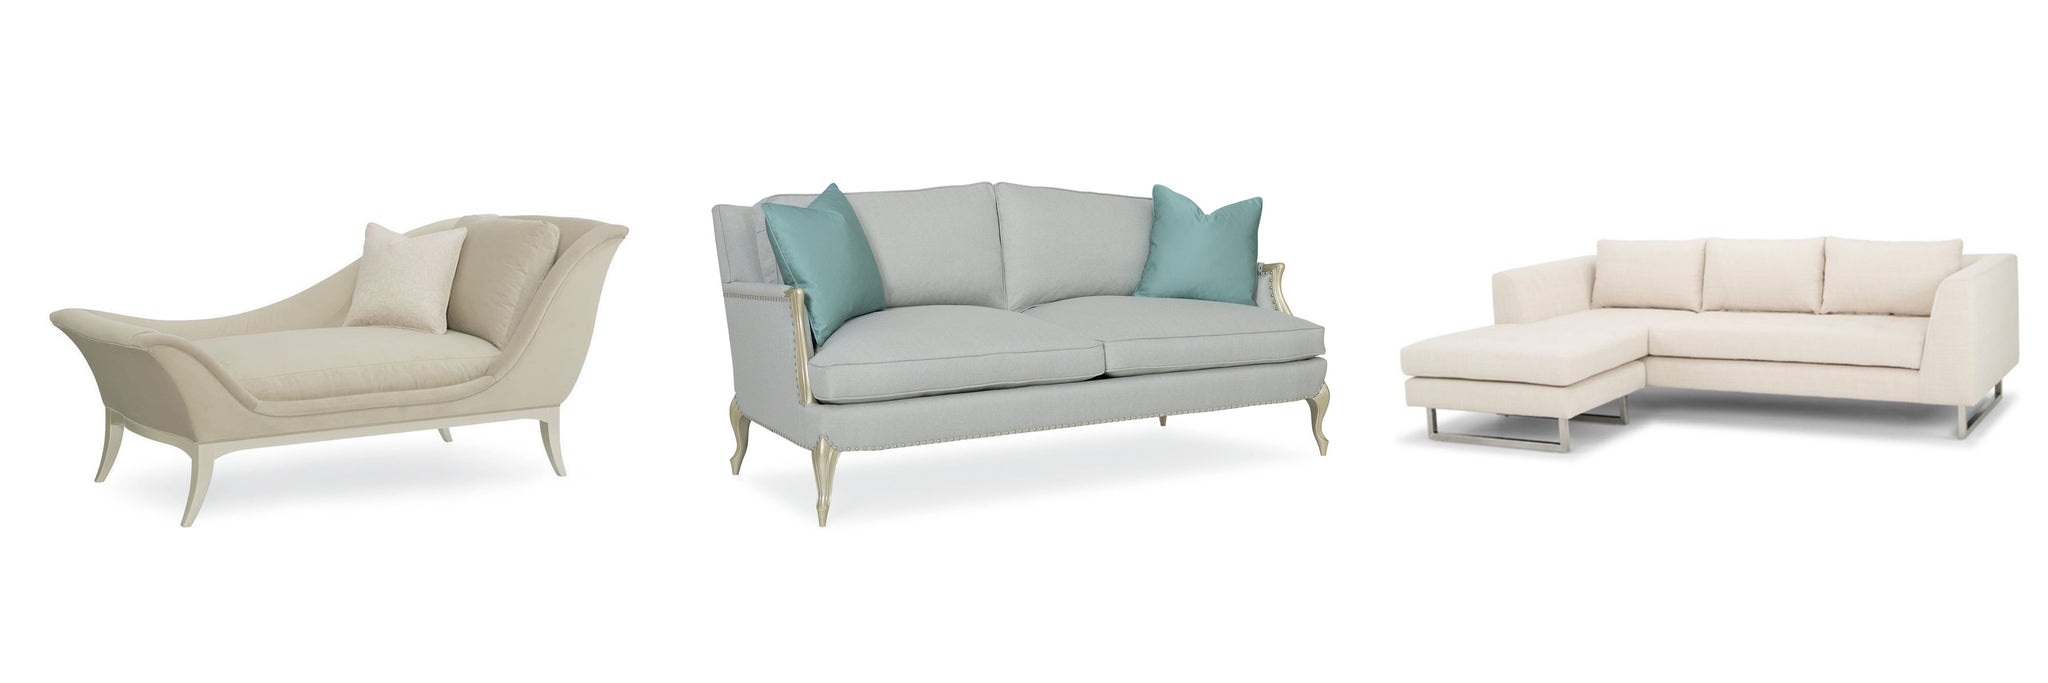 shop the look - sofas